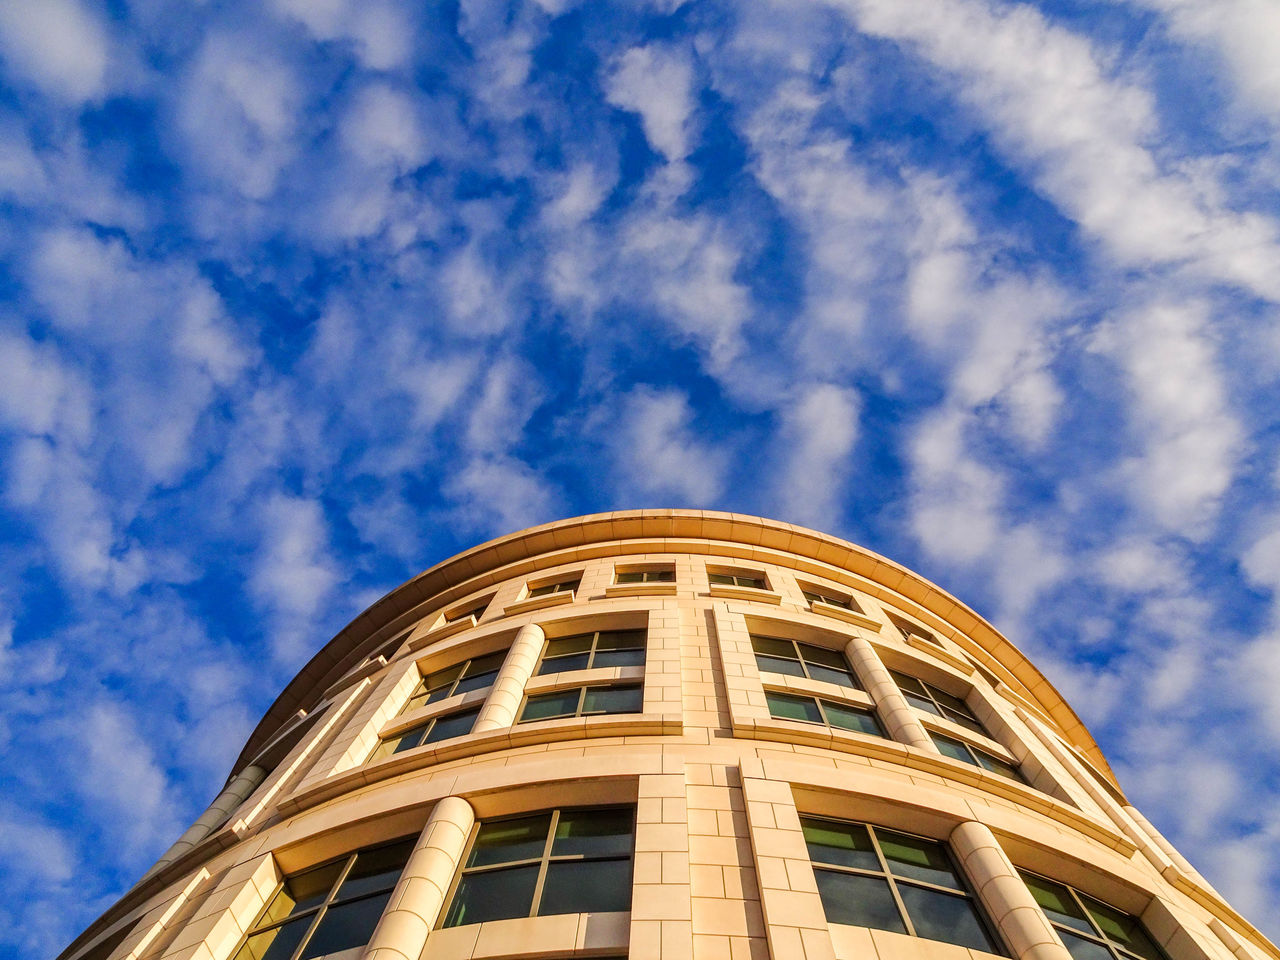 Clean building against blue sky background. Architecture Architecture Backgrounds Building Exterior Building Exteriors Built Structure City Life Clean Lines Cloud - Sky Day Dc Focused Futuristic Getty Images Look Up And Thrive Low Angle View No People Outdoors Sky Skyscraper Travel Destinations